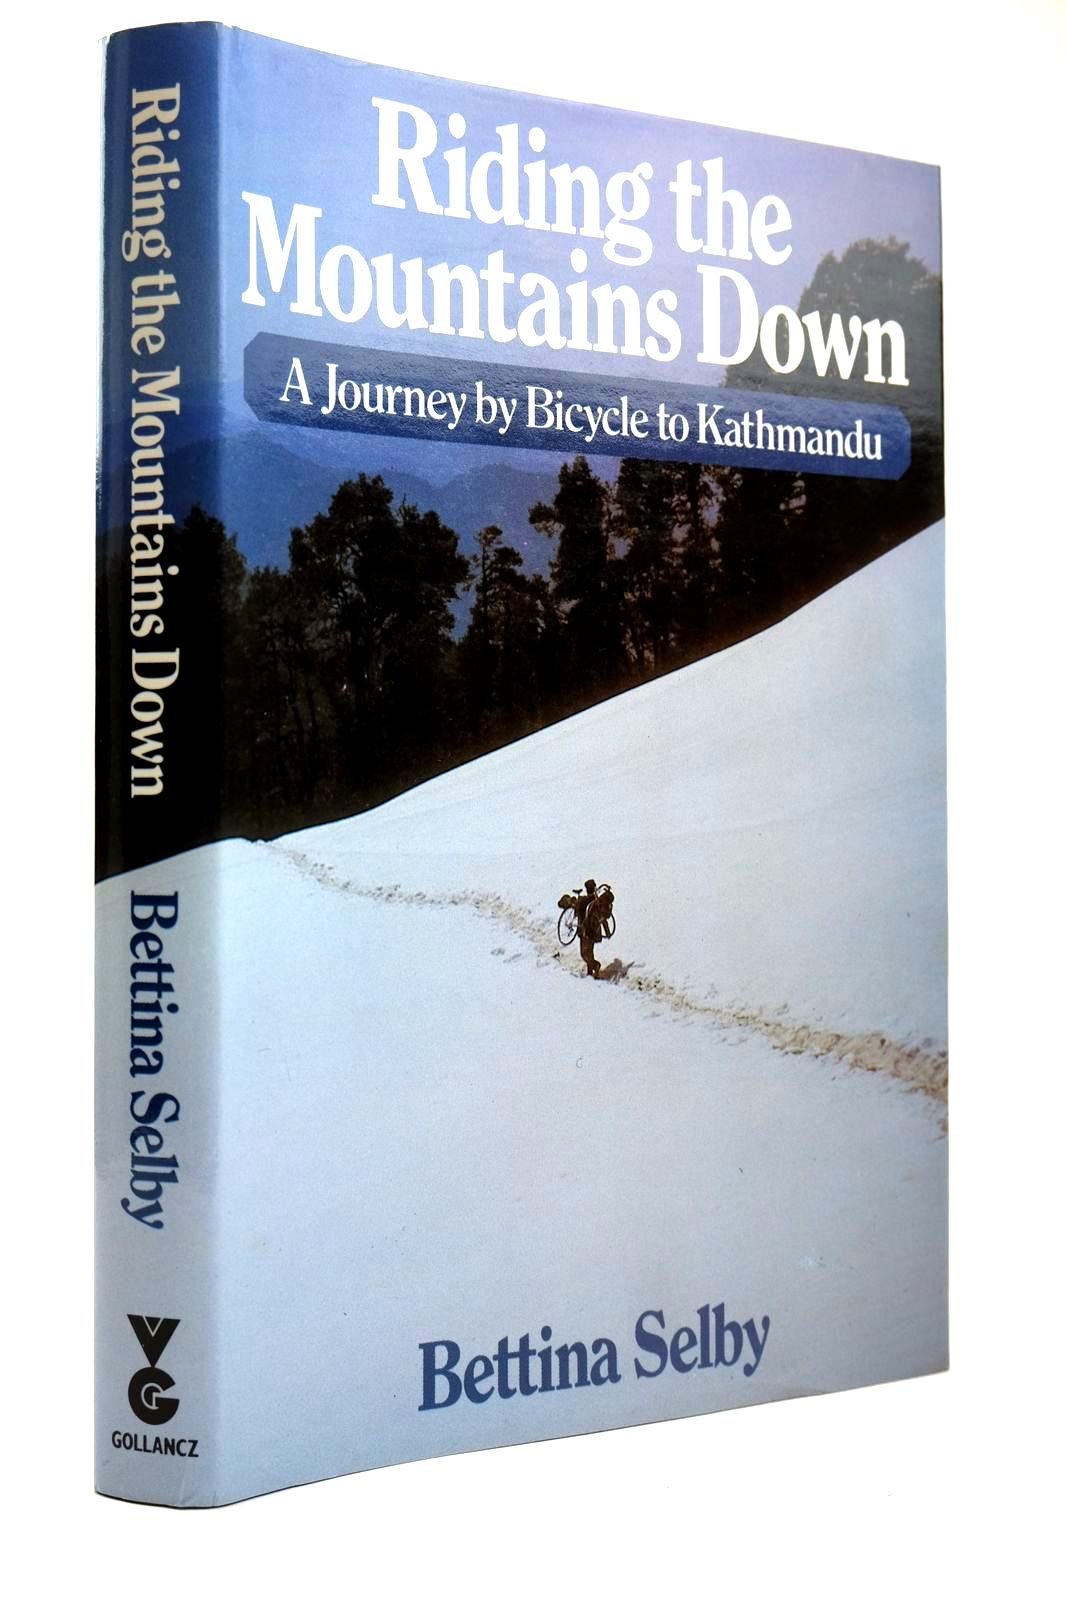 Photo of RIDING THE MOUNTAINS DOWN written by Selby, Bettina published by Victor Gollancz Ltd. (STOCK CODE: 2132470)  for sale by Stella & Rose's Books